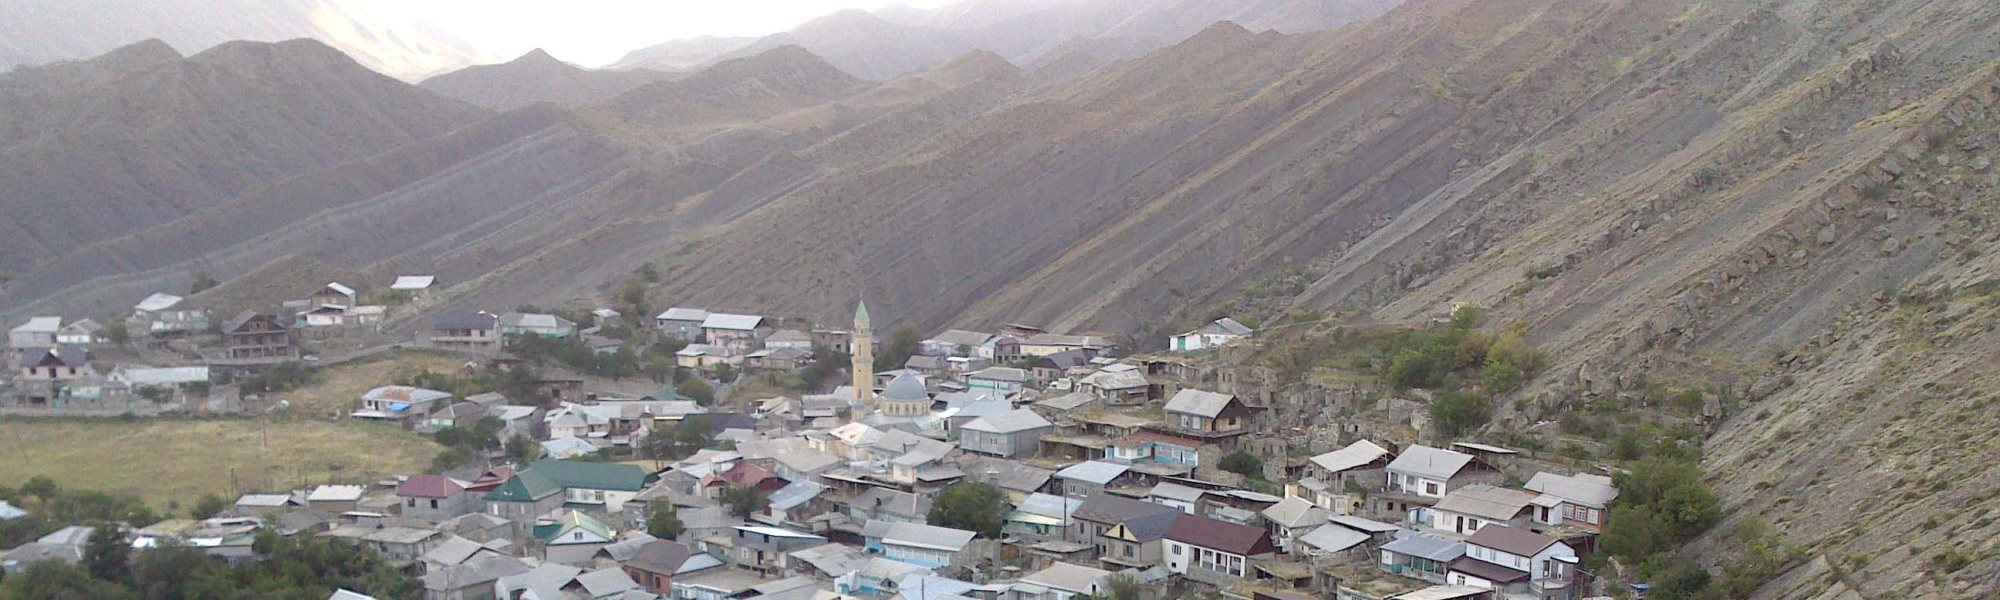 A look at the central part of the Muni village, Andi-speaking area, Daghestan